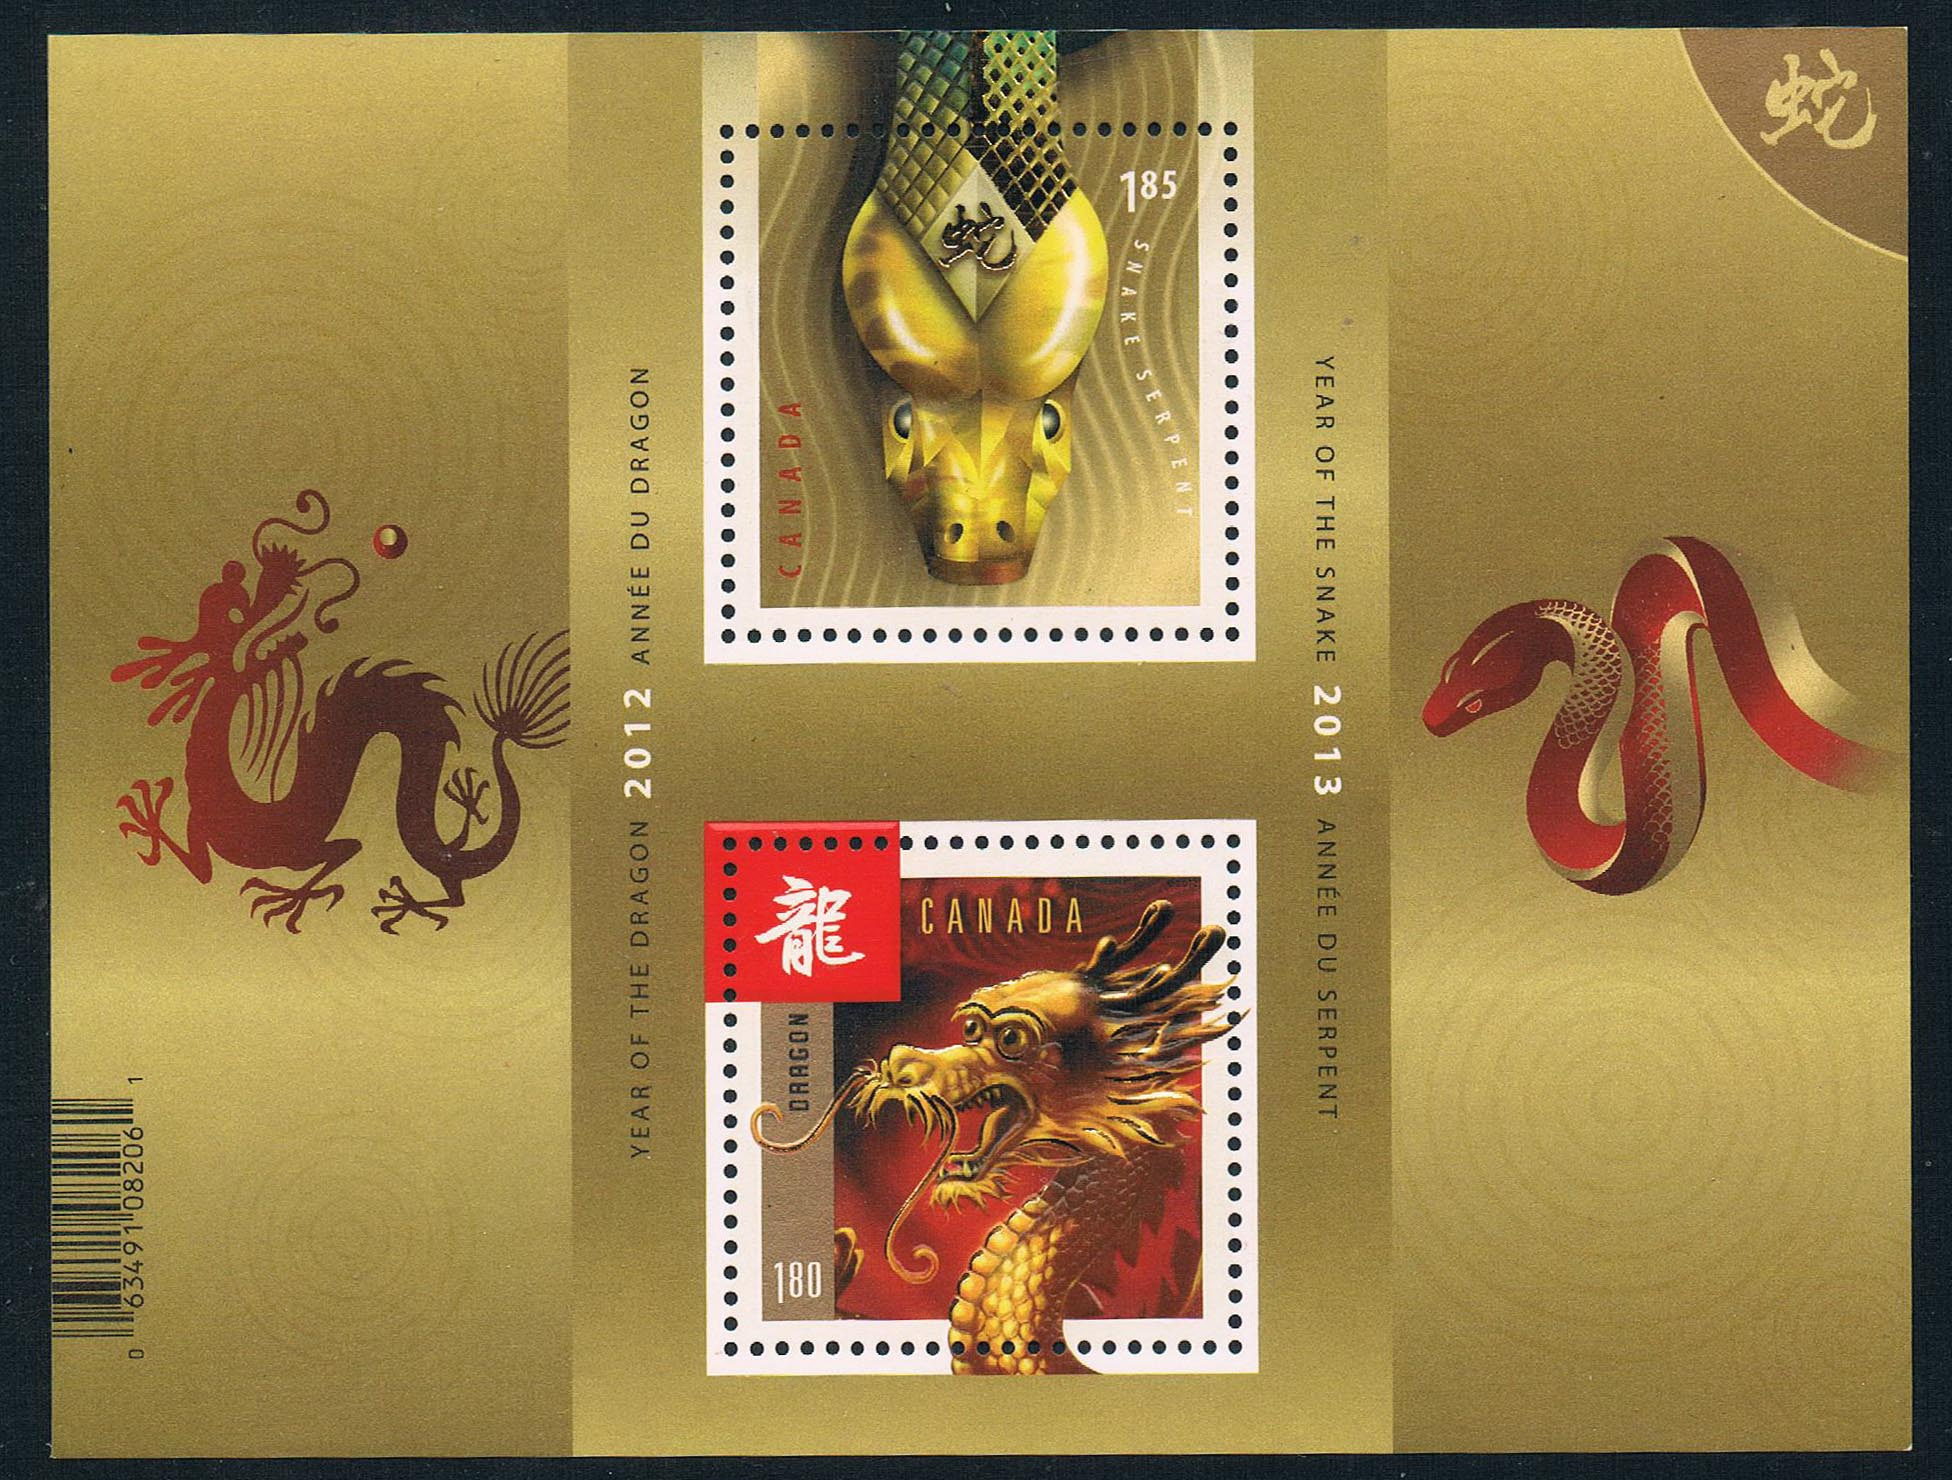 CA0566 Canada 2013 China Zodiac snake dragon stamps are all new 0111 1MS handover робот zodiac ov3400